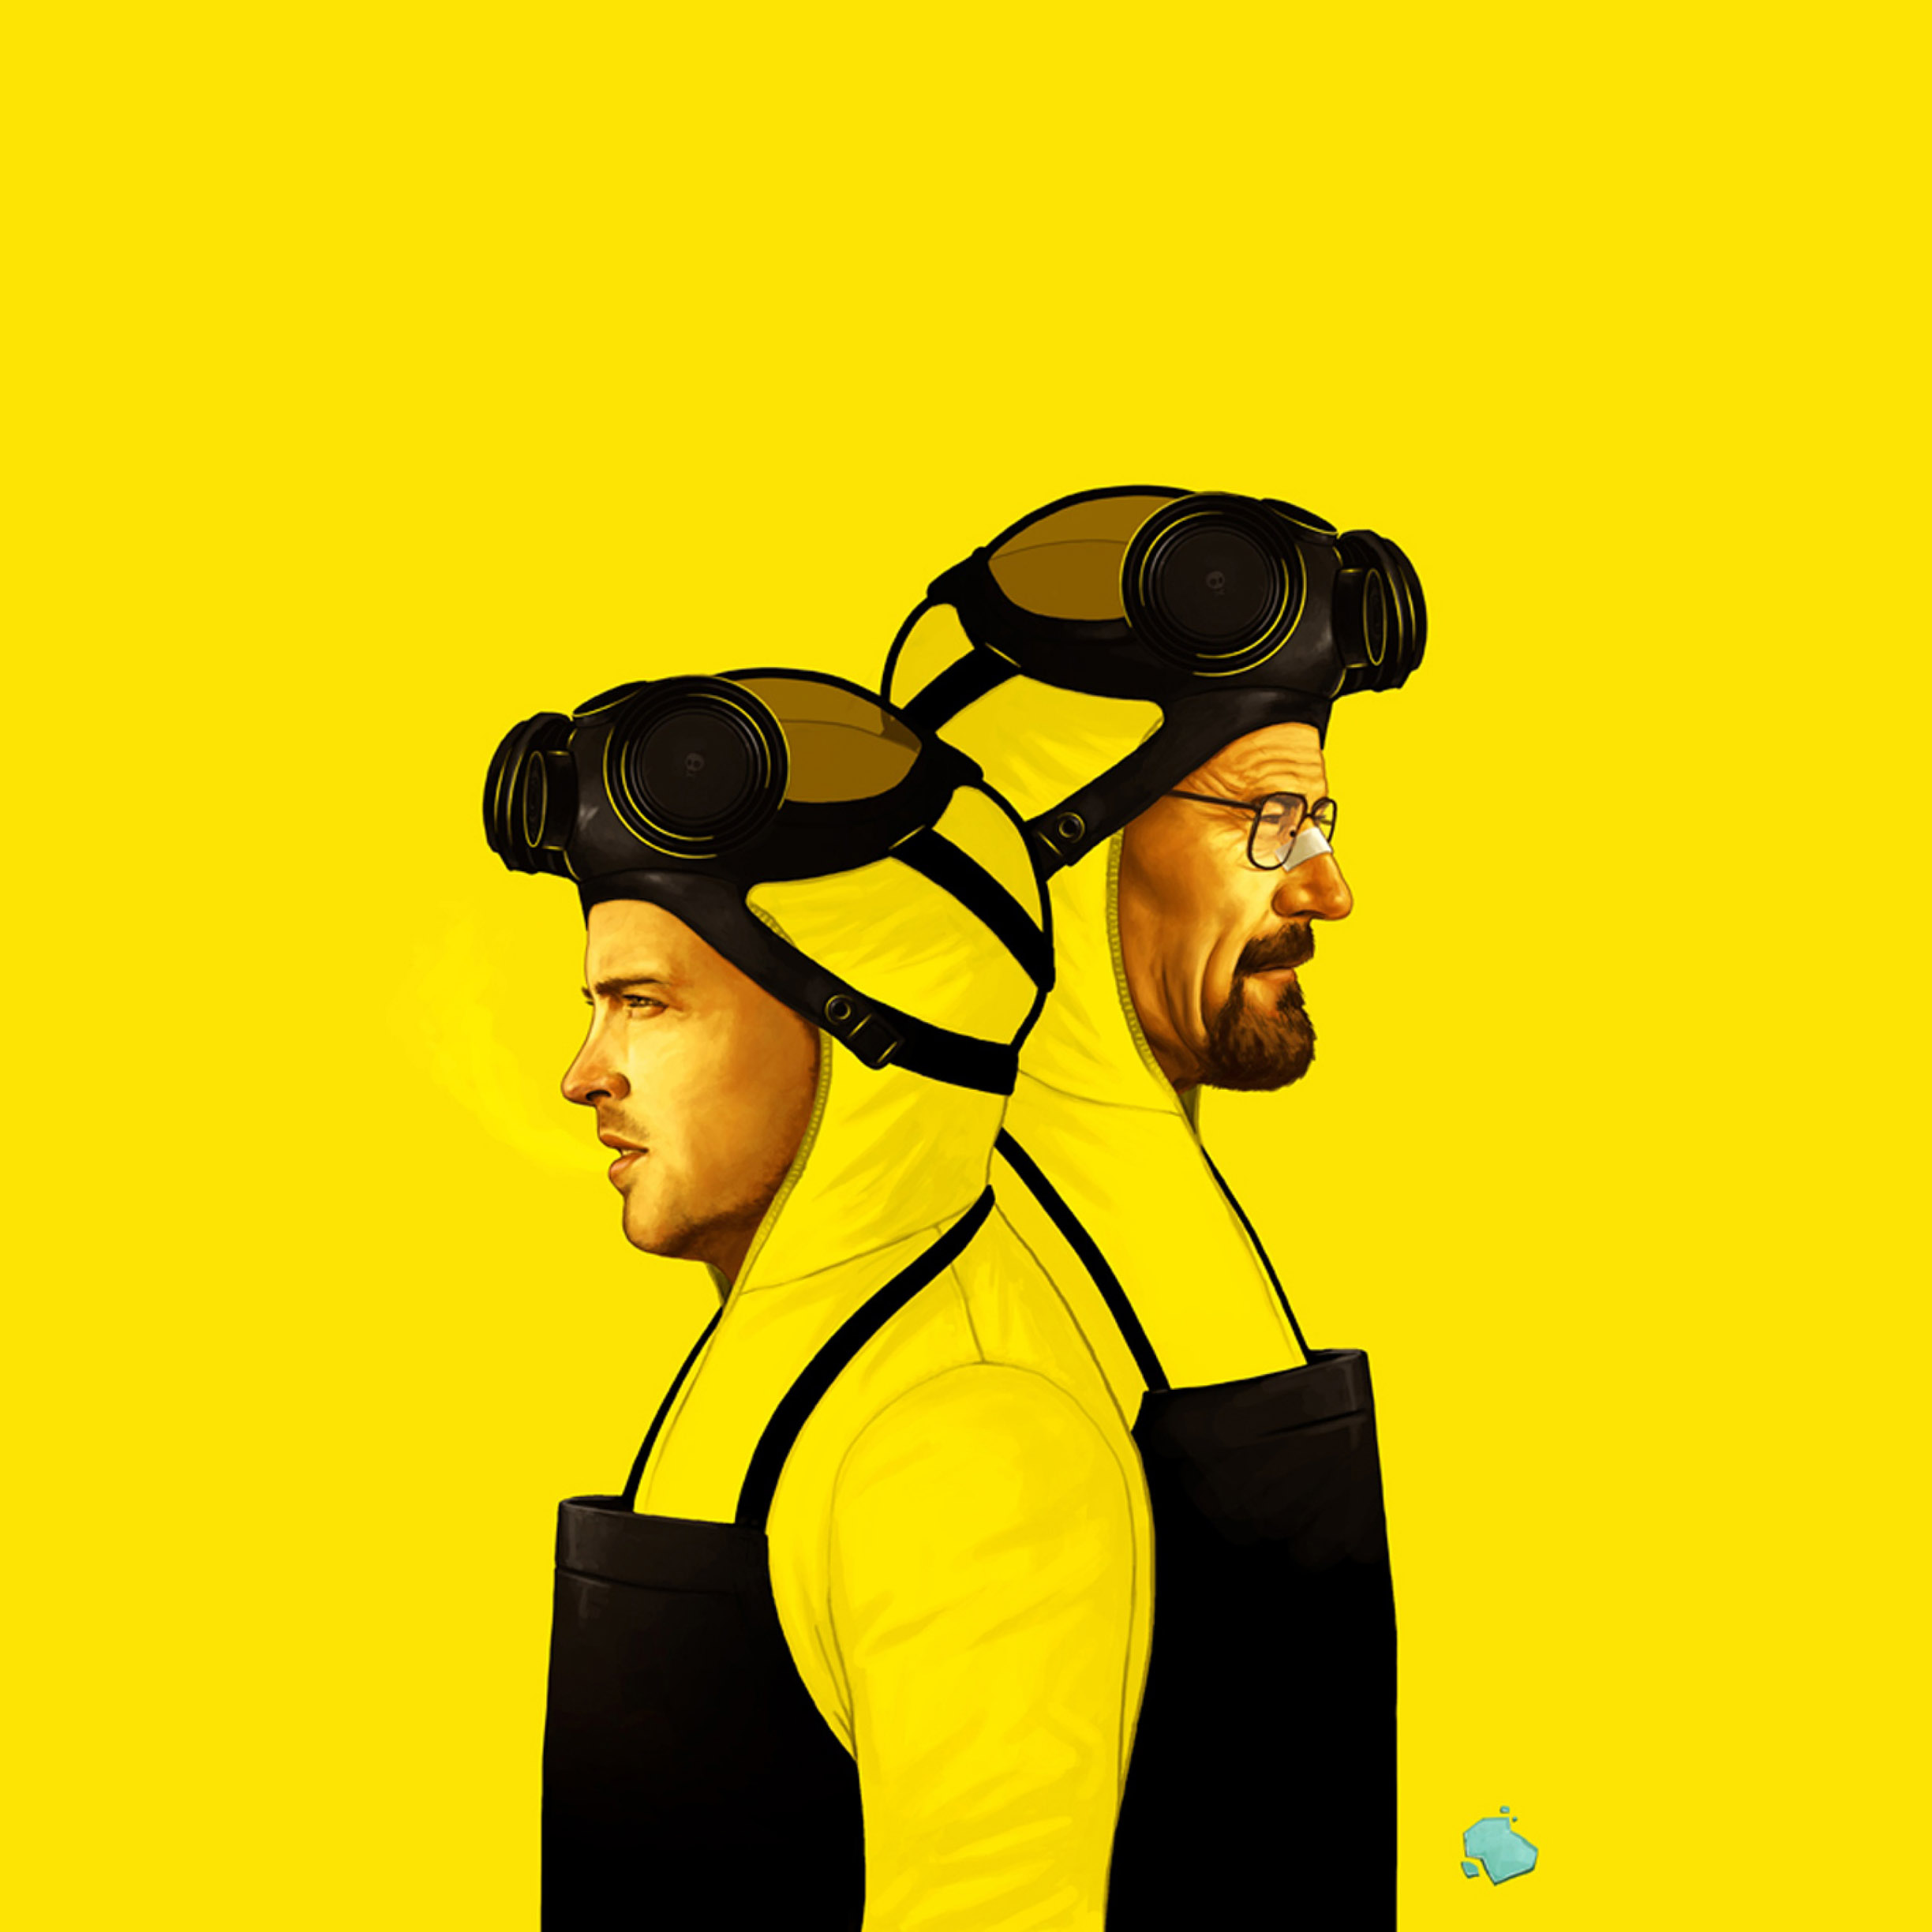 Iphone Hd Retina Wallpapers Breaking Bad Wallpapers For Iphone And Ipad